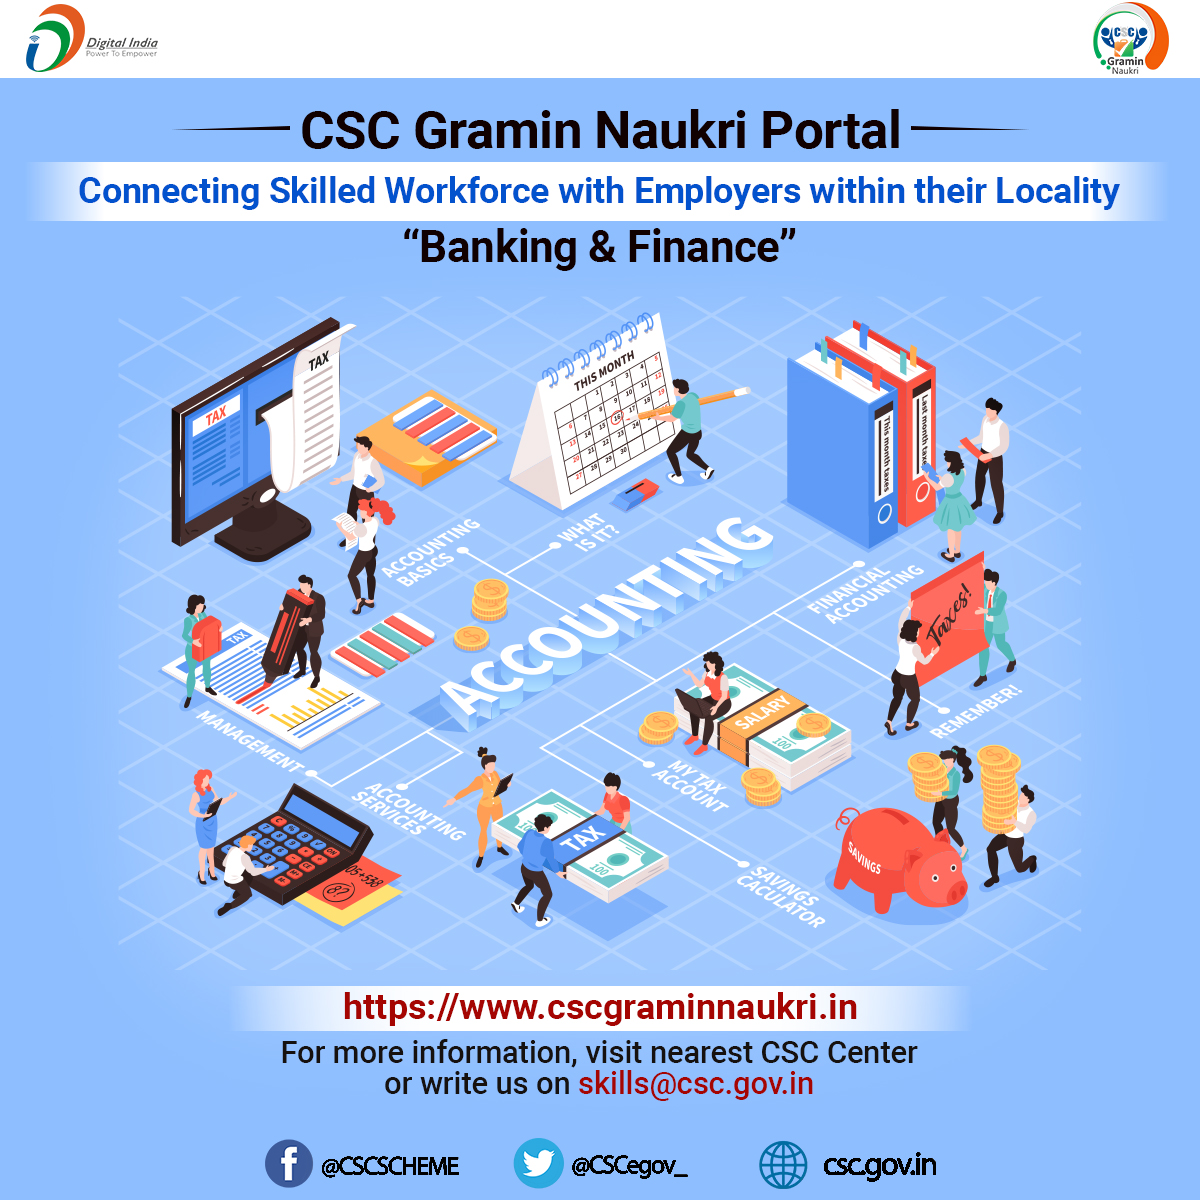 "CSC Gramin Naukri Portal!!  Connecting the skilled workforce with employers within their locality...""Banking & Finance""  Register Now: https://t.co/uAdg4IBkZz or write to us at skills@csc.gov.in  #CSC #DigitalIndia #TransformingIndia #WednesdayMotivation #WednesdayWisdom https://t.co/l4Ih0GJief"